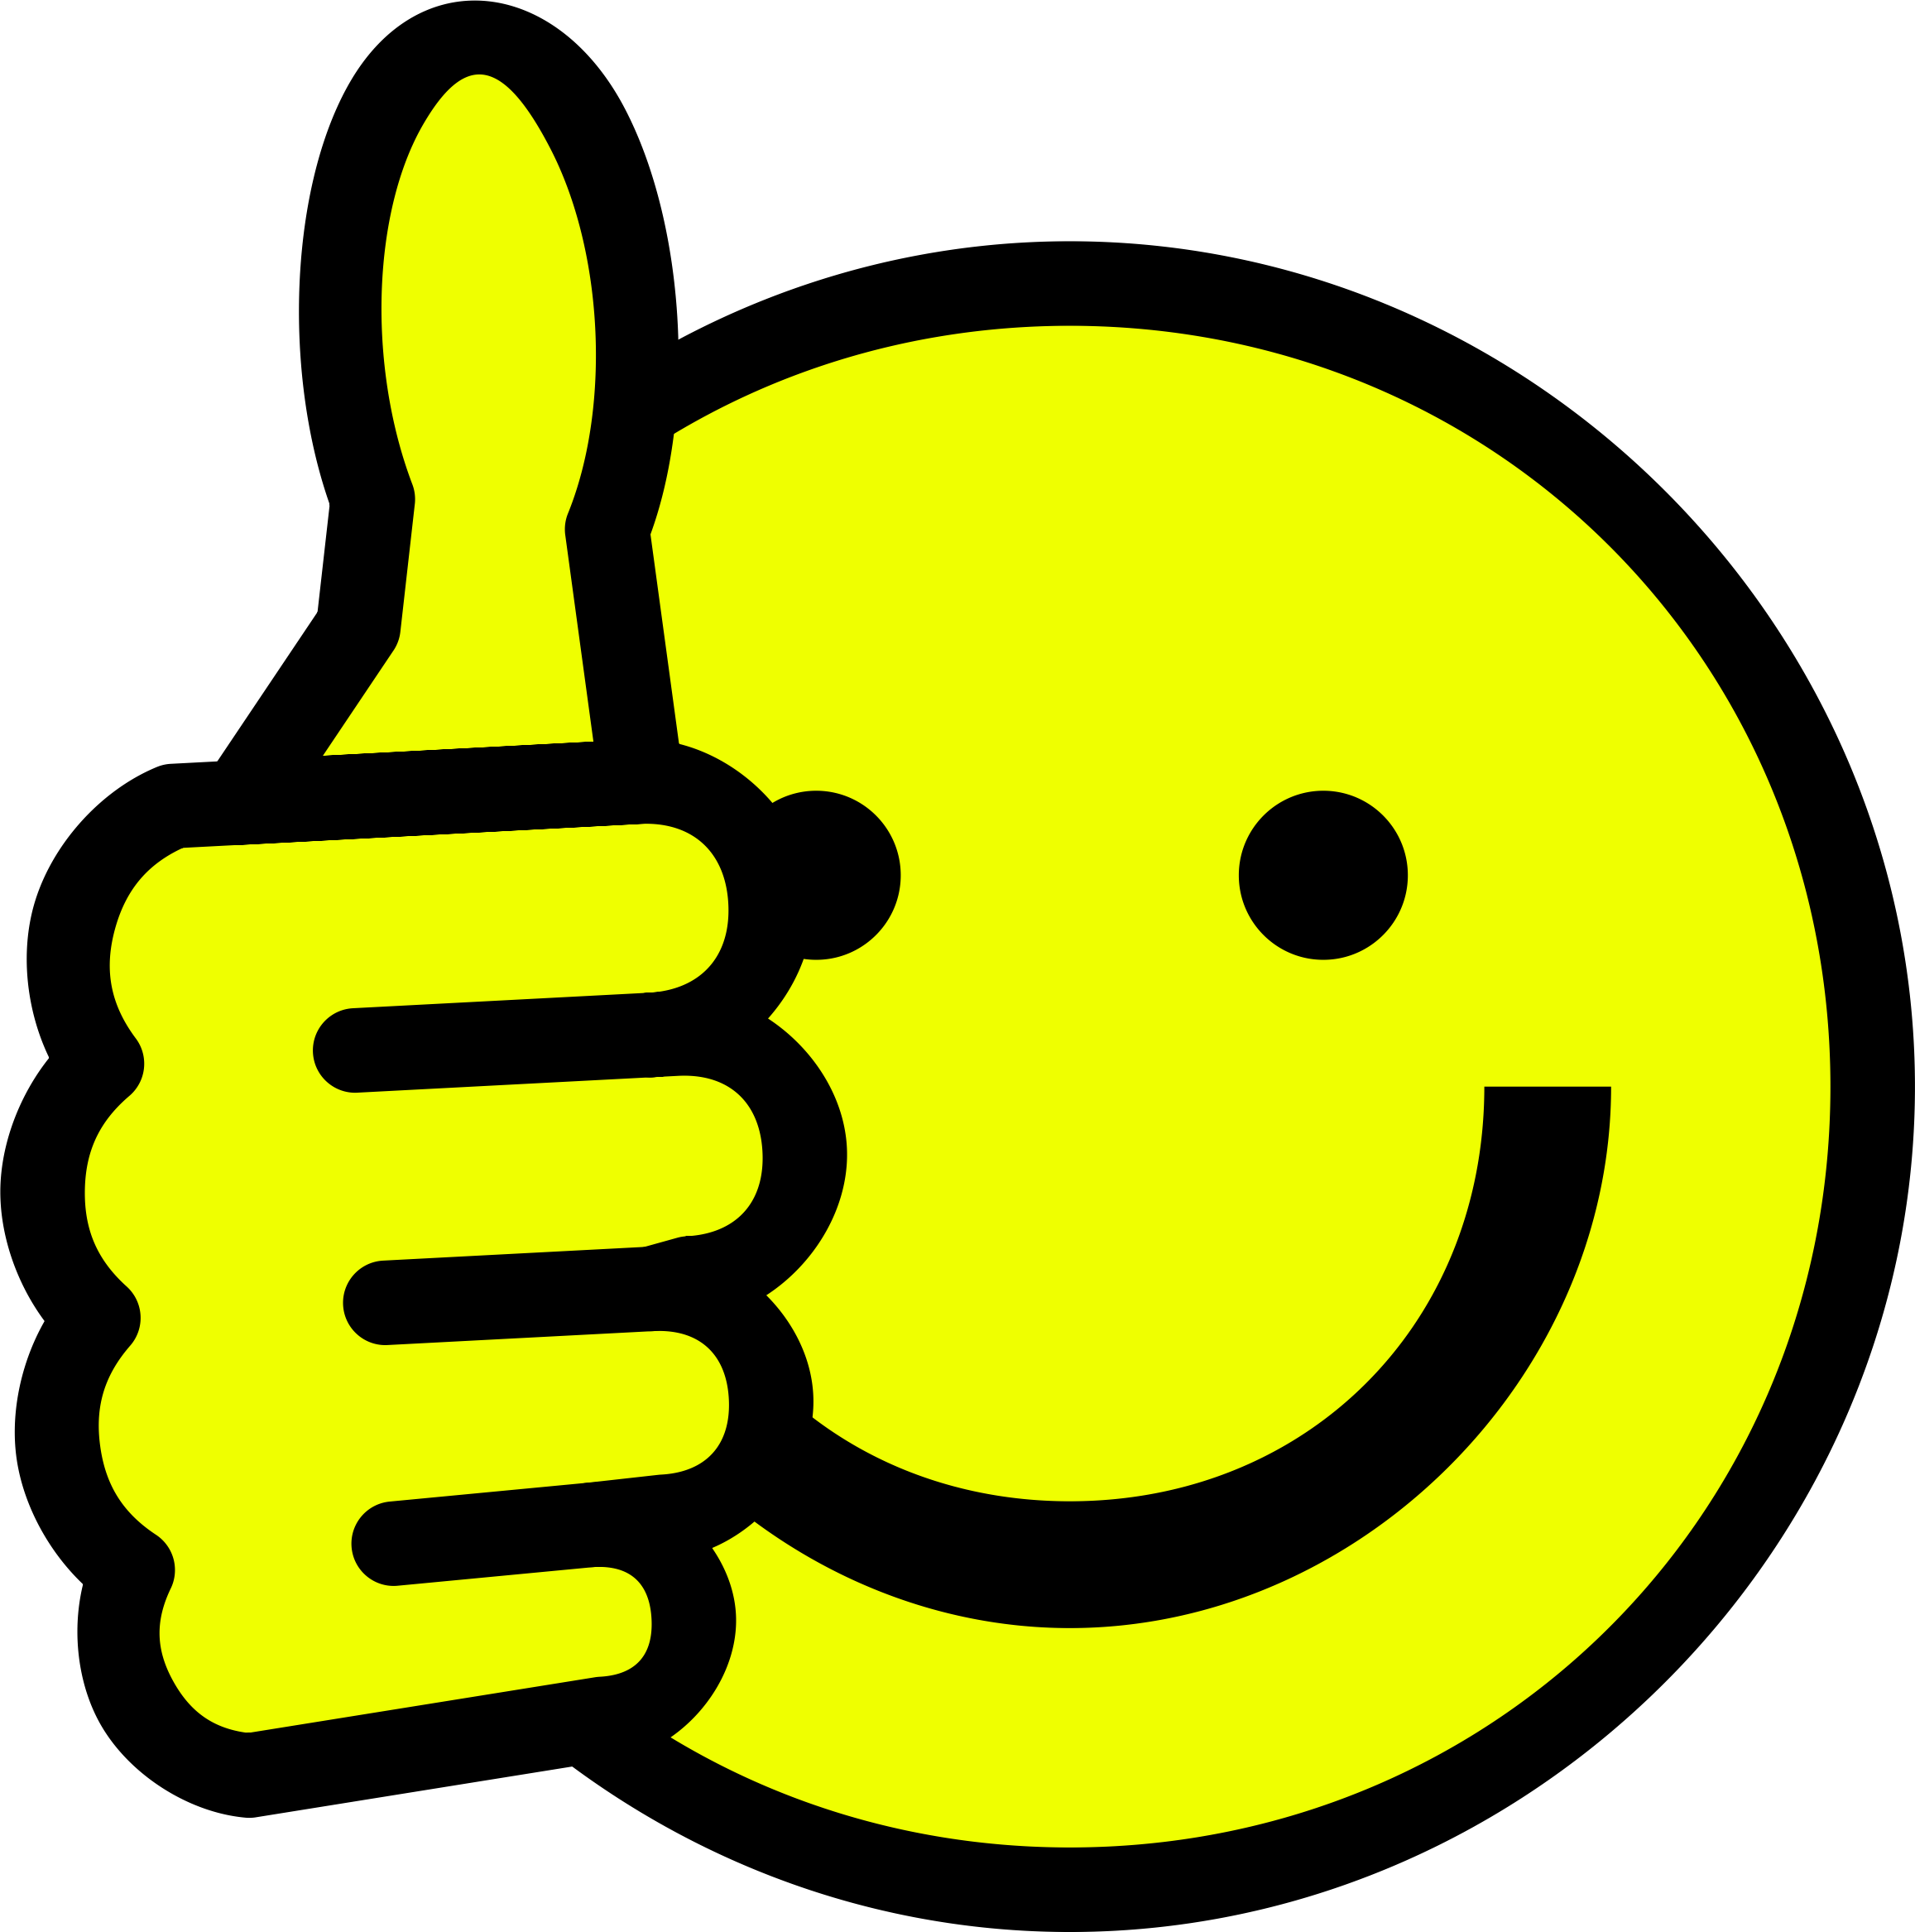 Smile clipart png. Smiley images free download